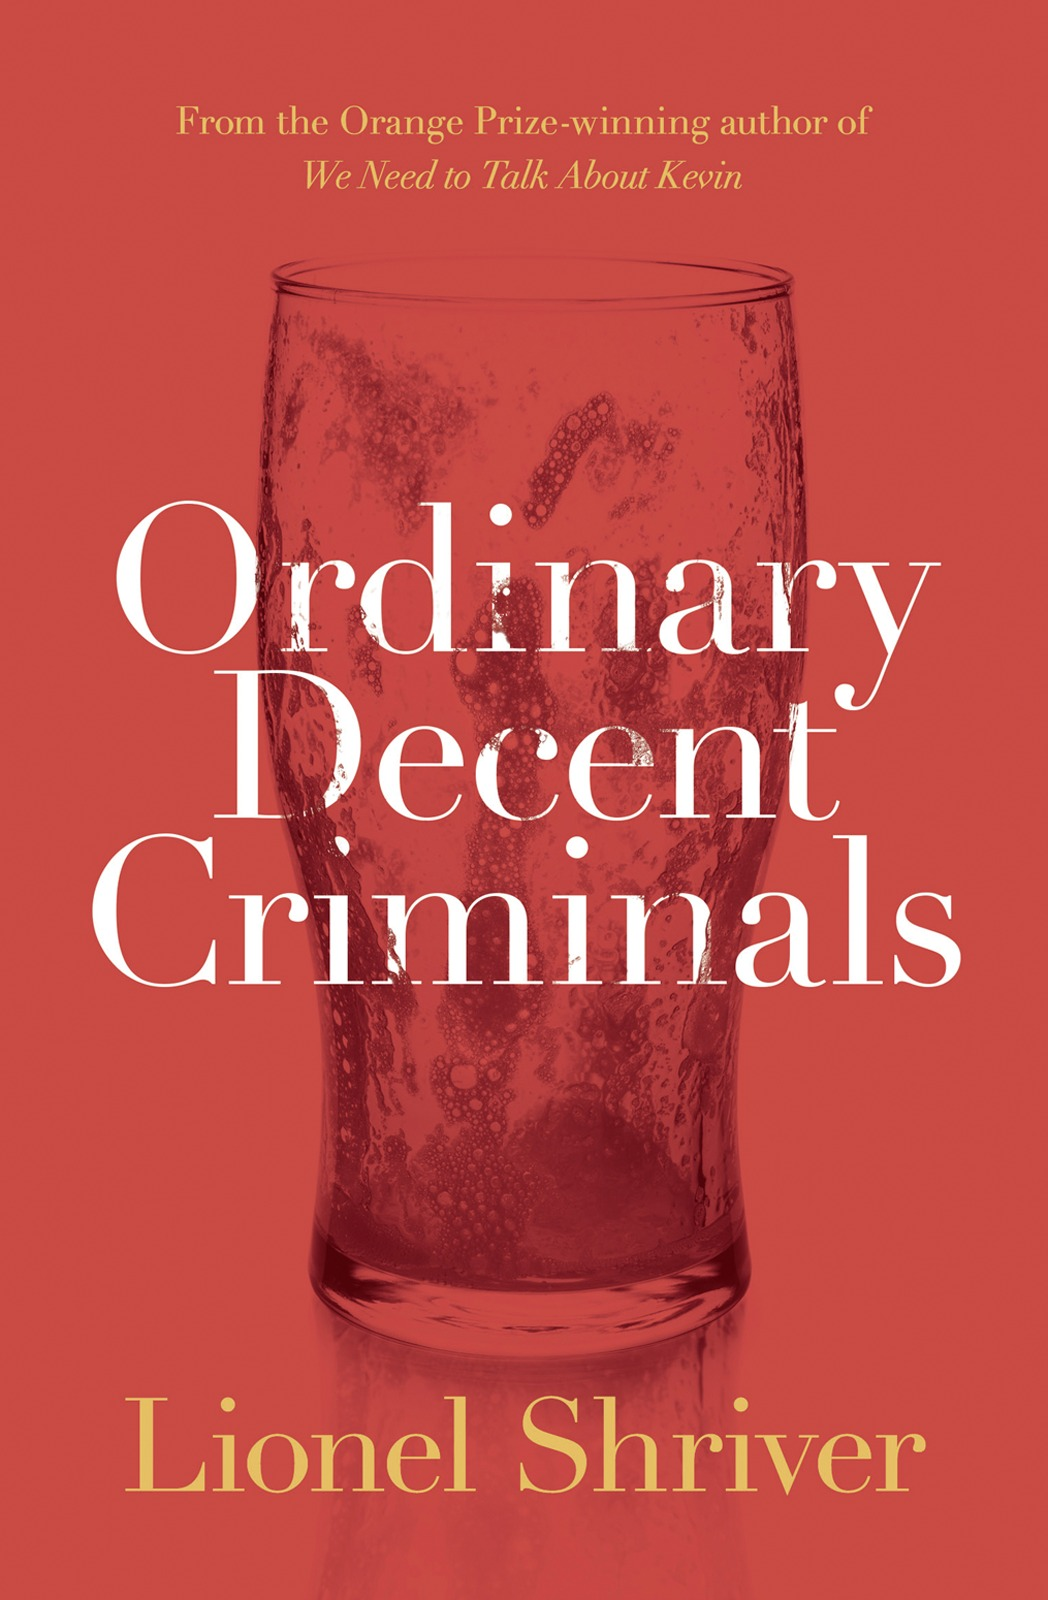 Lionel Shriver Ordinary Decent Criminals